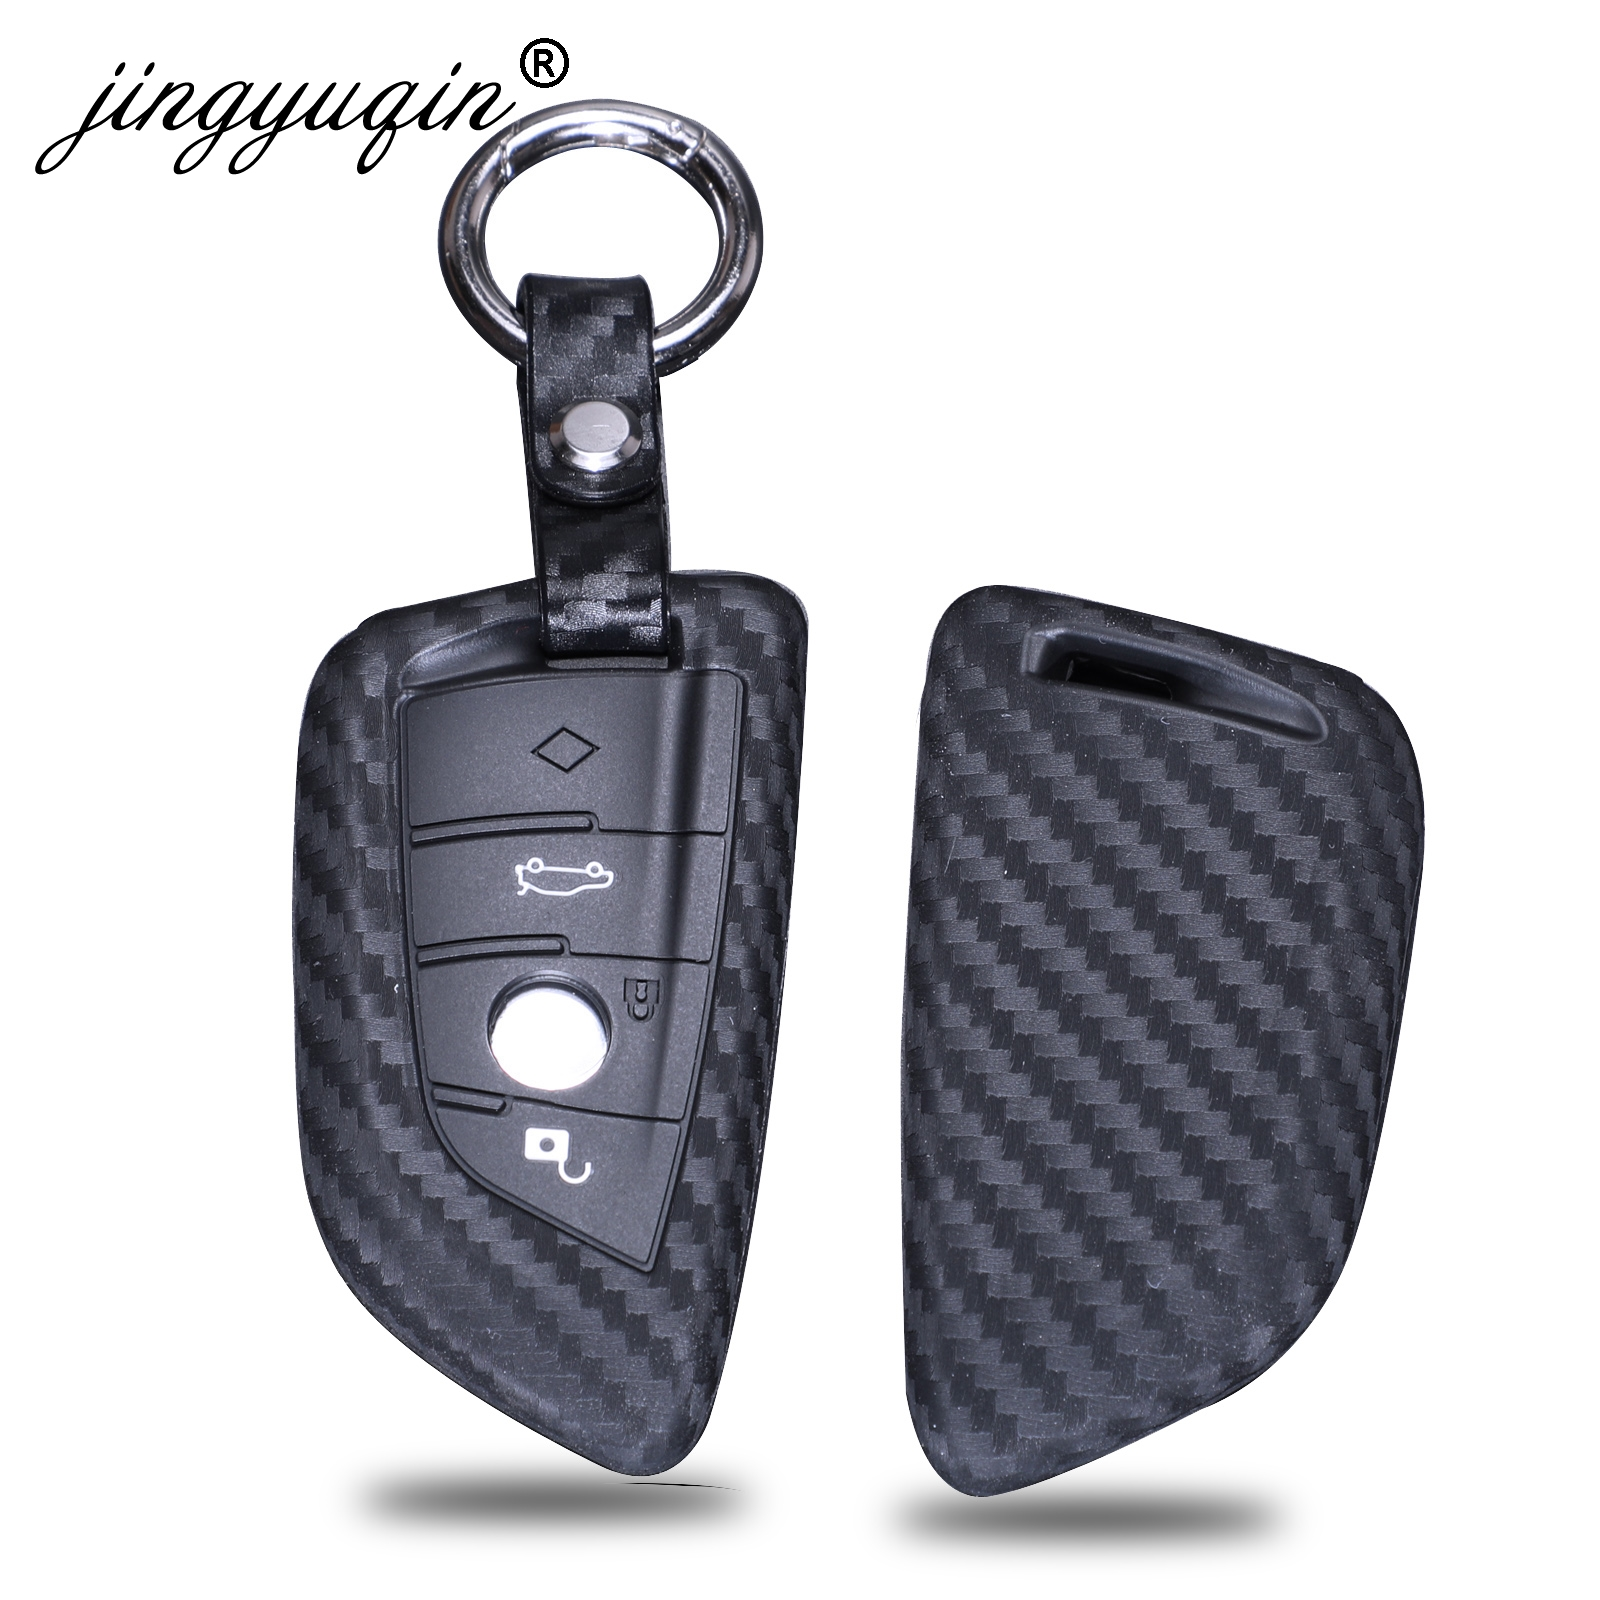 Jingyuqin New Carbon Silicone Car Key Cover Wallet For BMW X5 X6 F16 F15 5 Series 2014- Smart Remote Car Keychain Fob Full Case